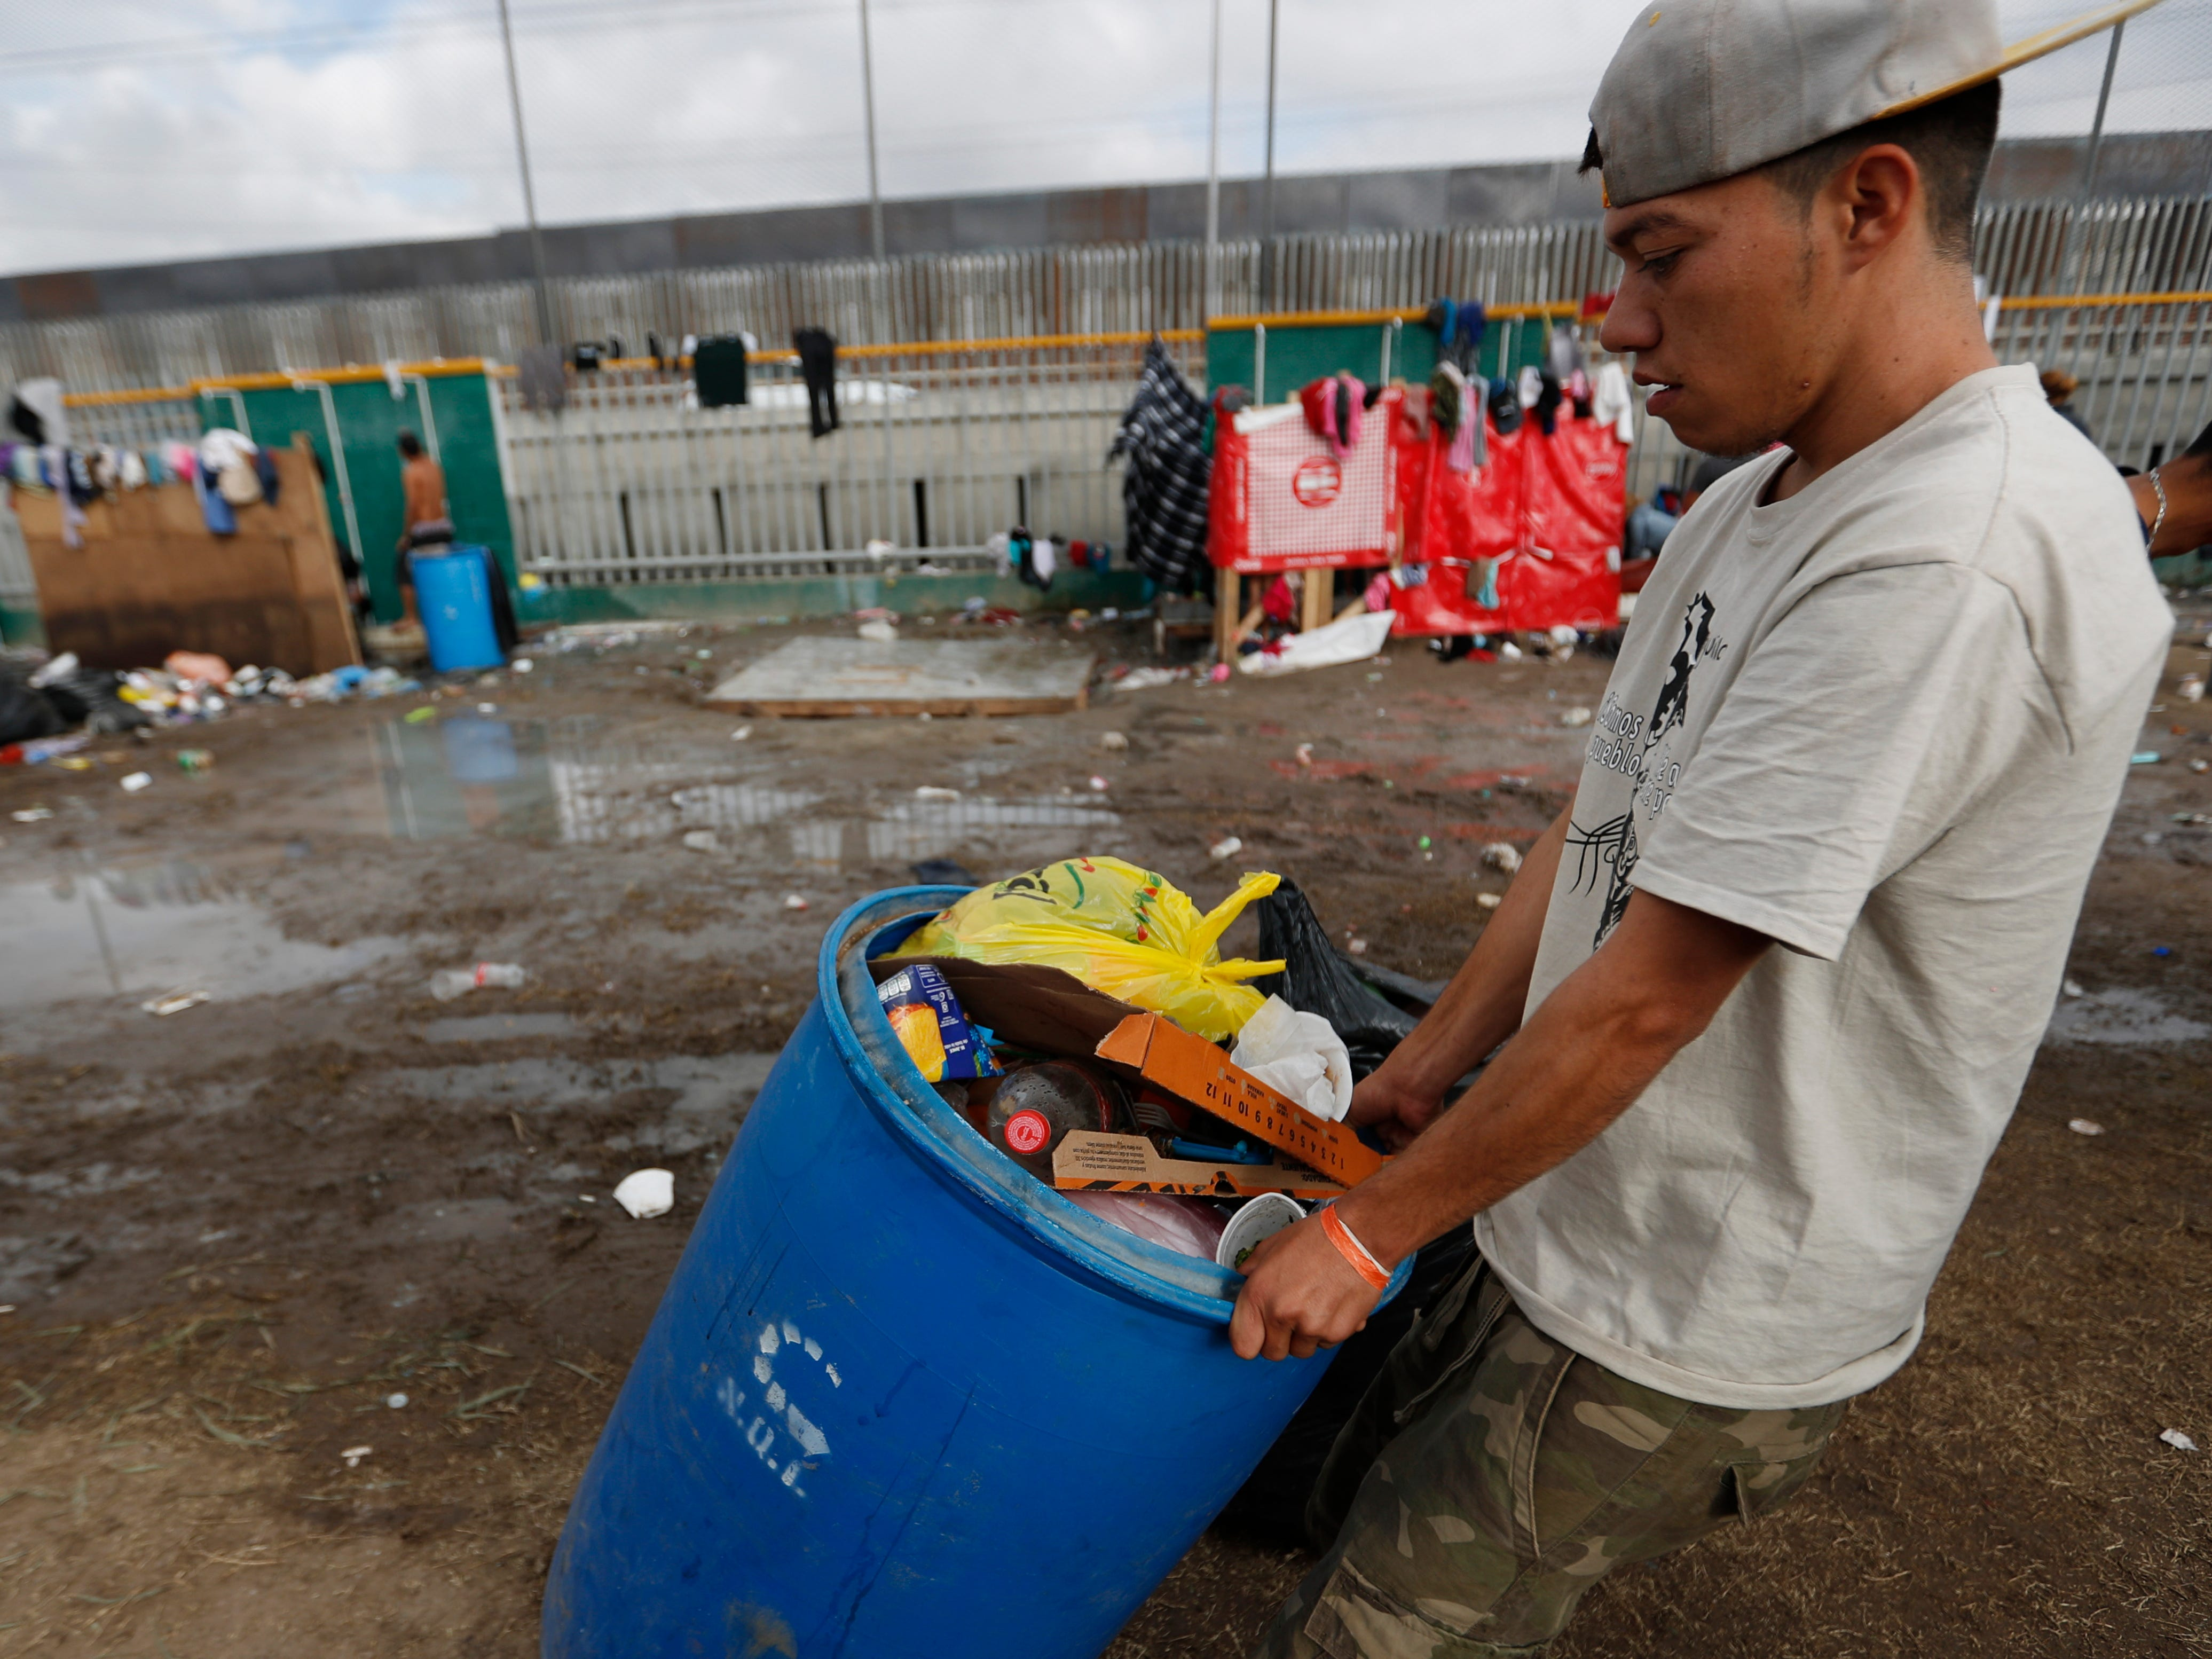 A migrant volunteer hauls trash out past a muddy section inside an overflowing sports complex on Nov. 28, 2018, where more than 5,000 Central American migrants are sheltering, in Tijuana, Mexico.